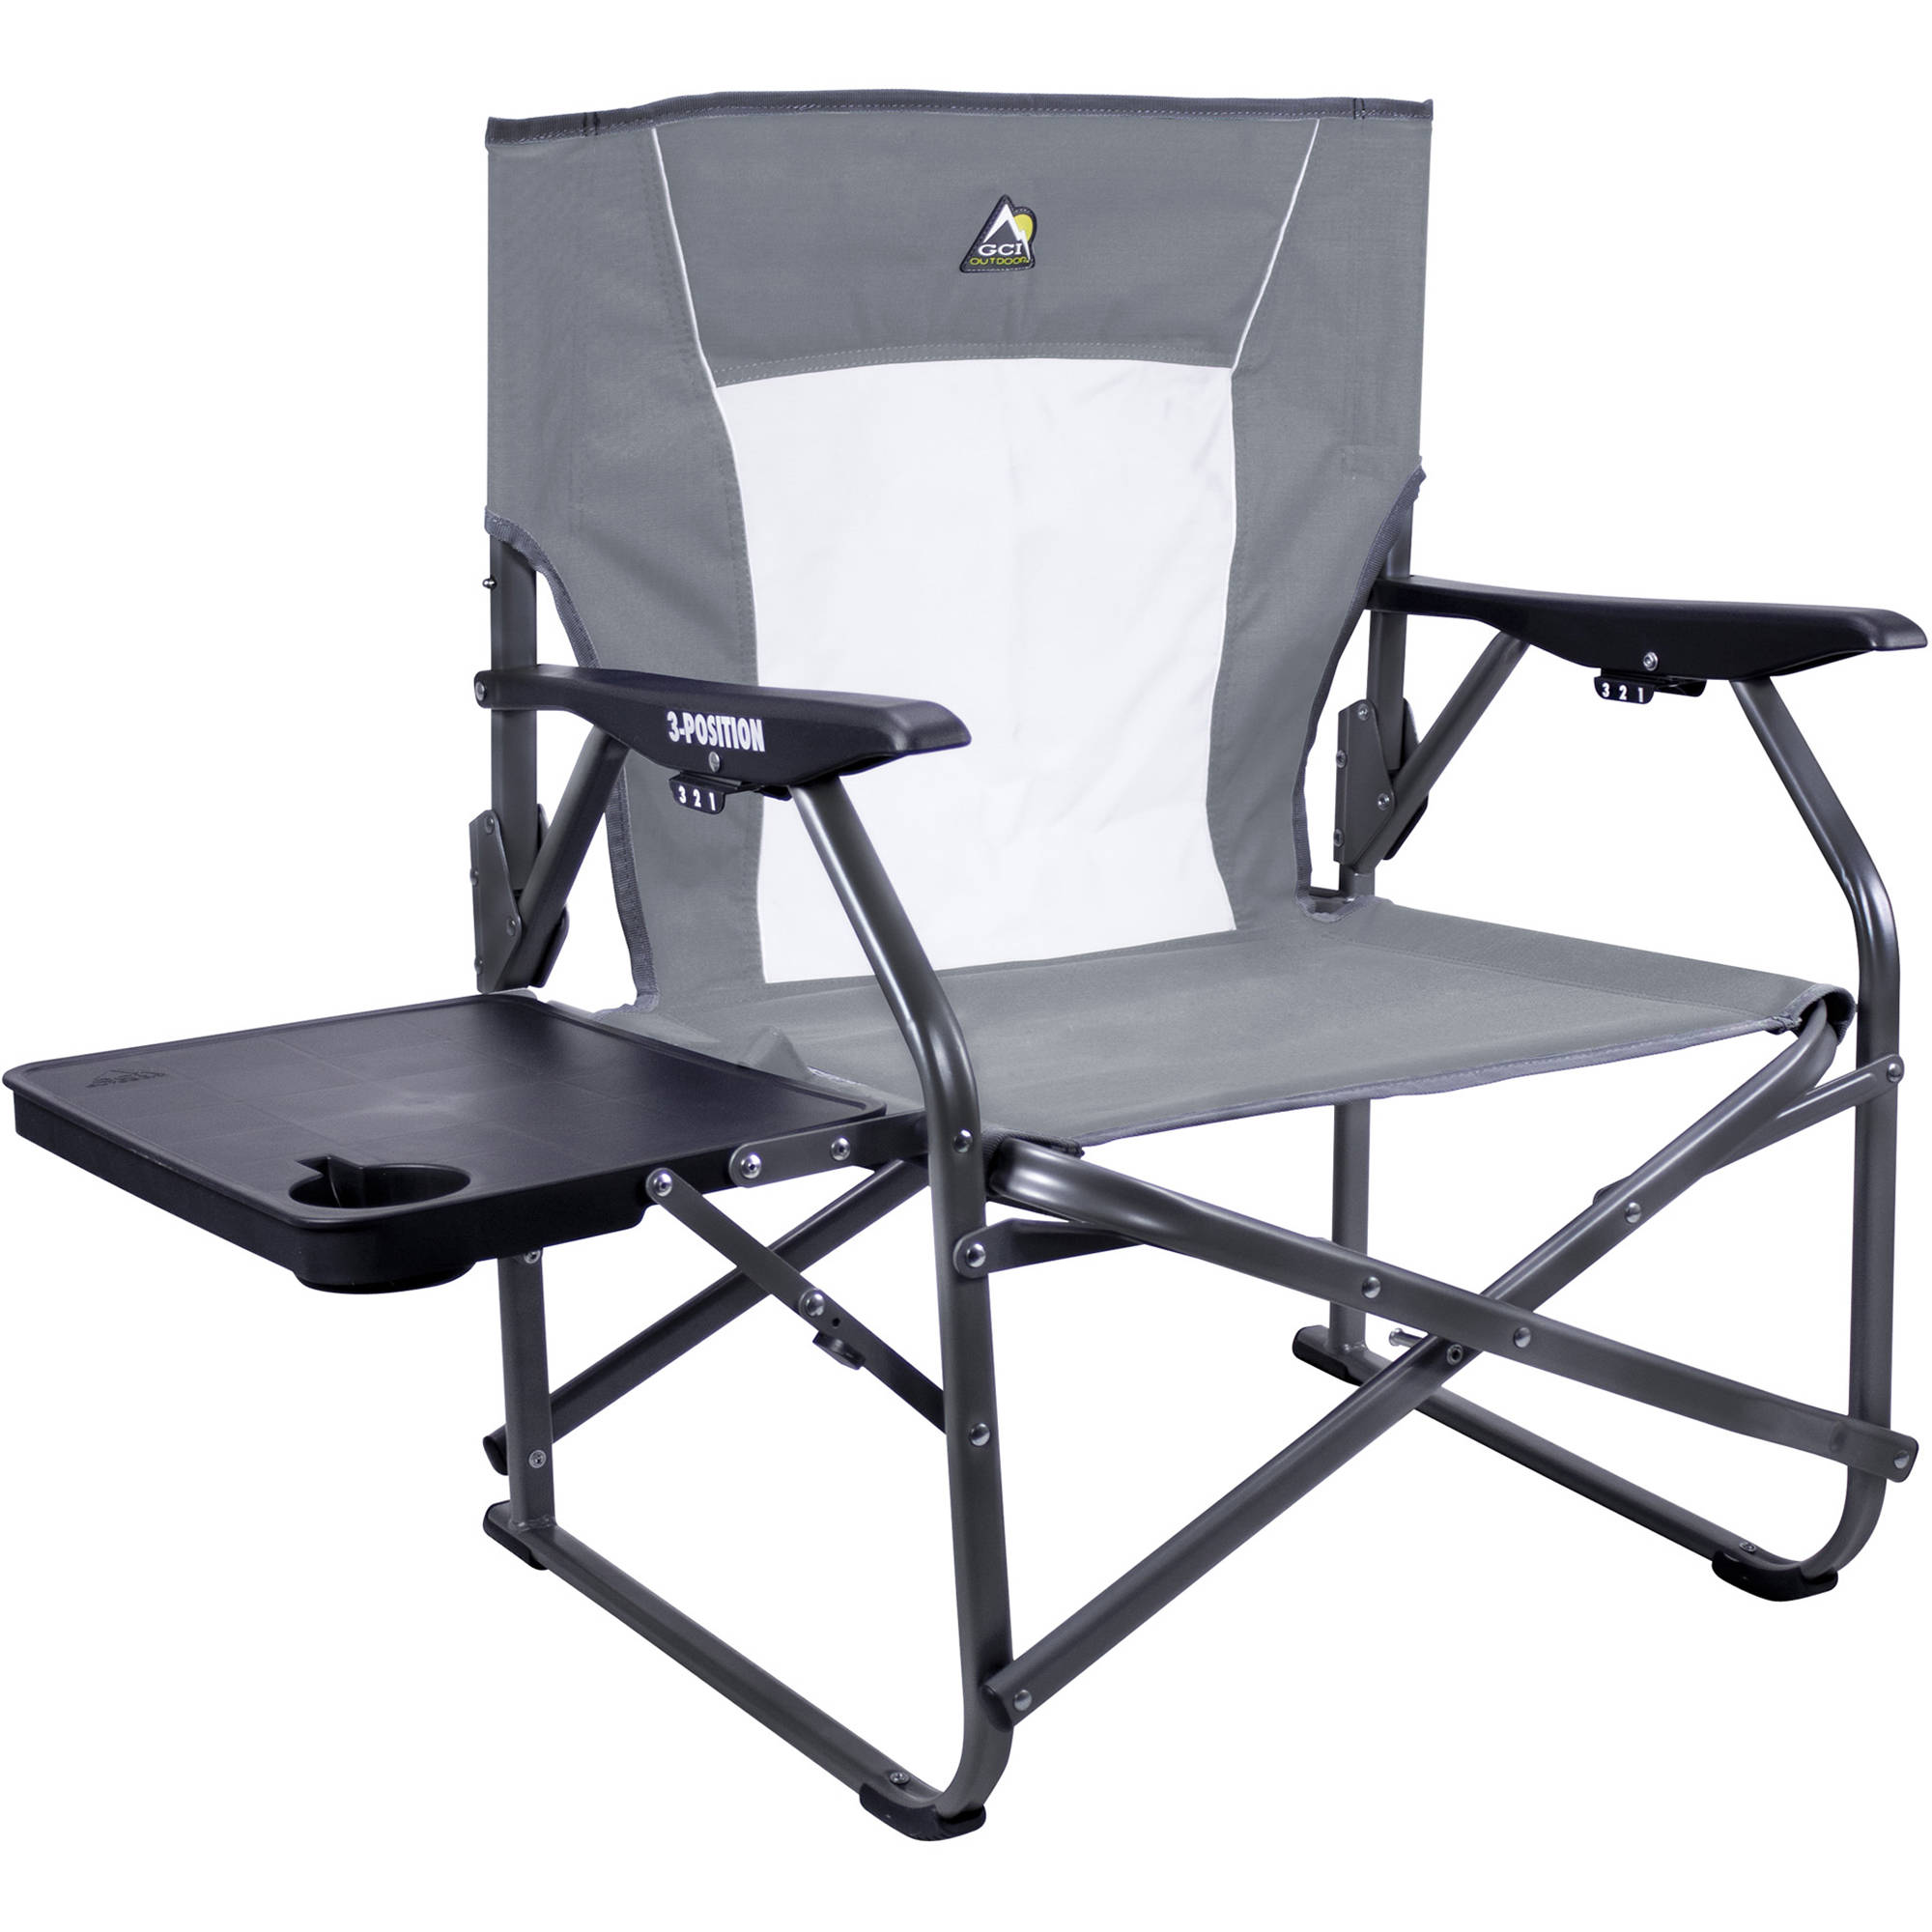 GCI Outdoor 3 Position Event Chair Mercury Gray B&H